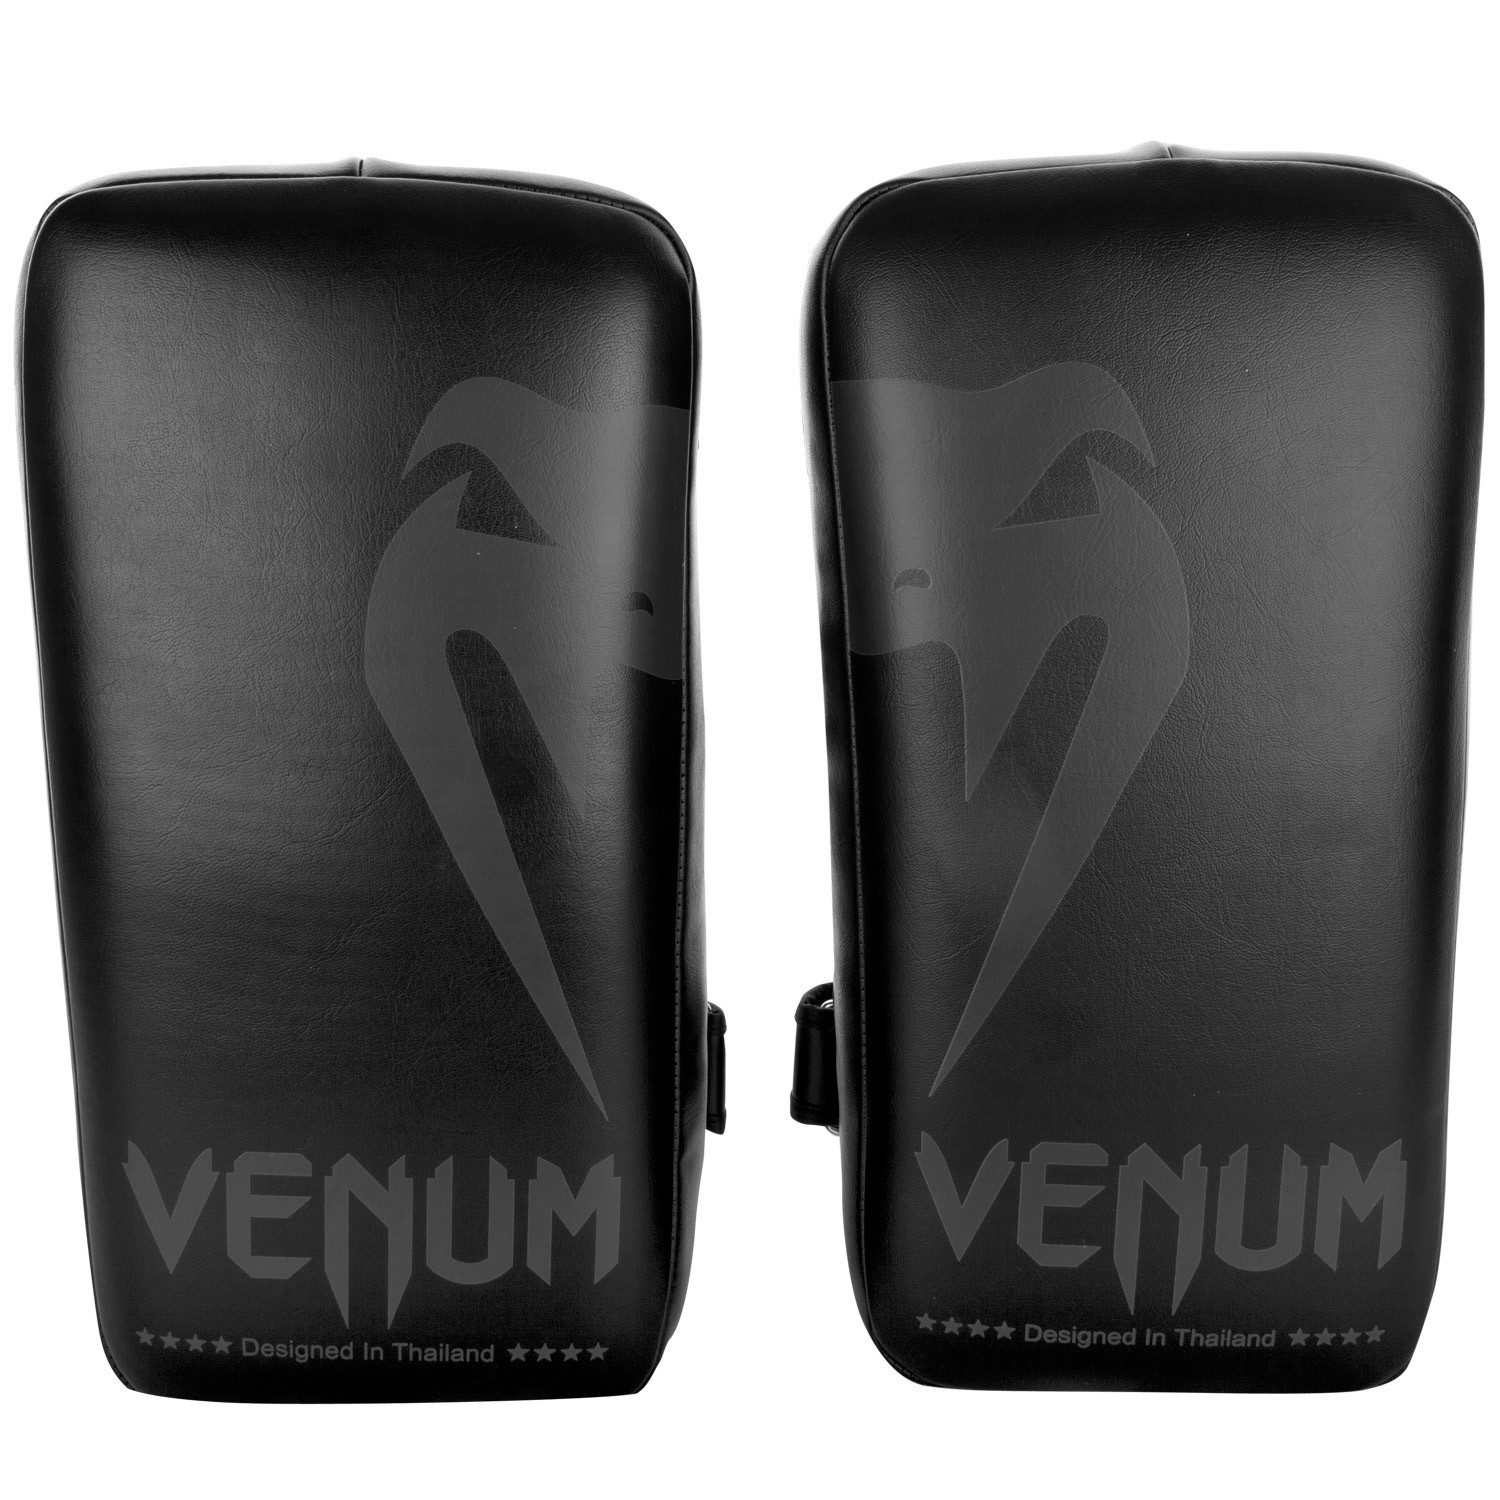 Пэды Venum Giant Kick Pads Black/Black (пара)<br>Вес кг: 2500.00000000;